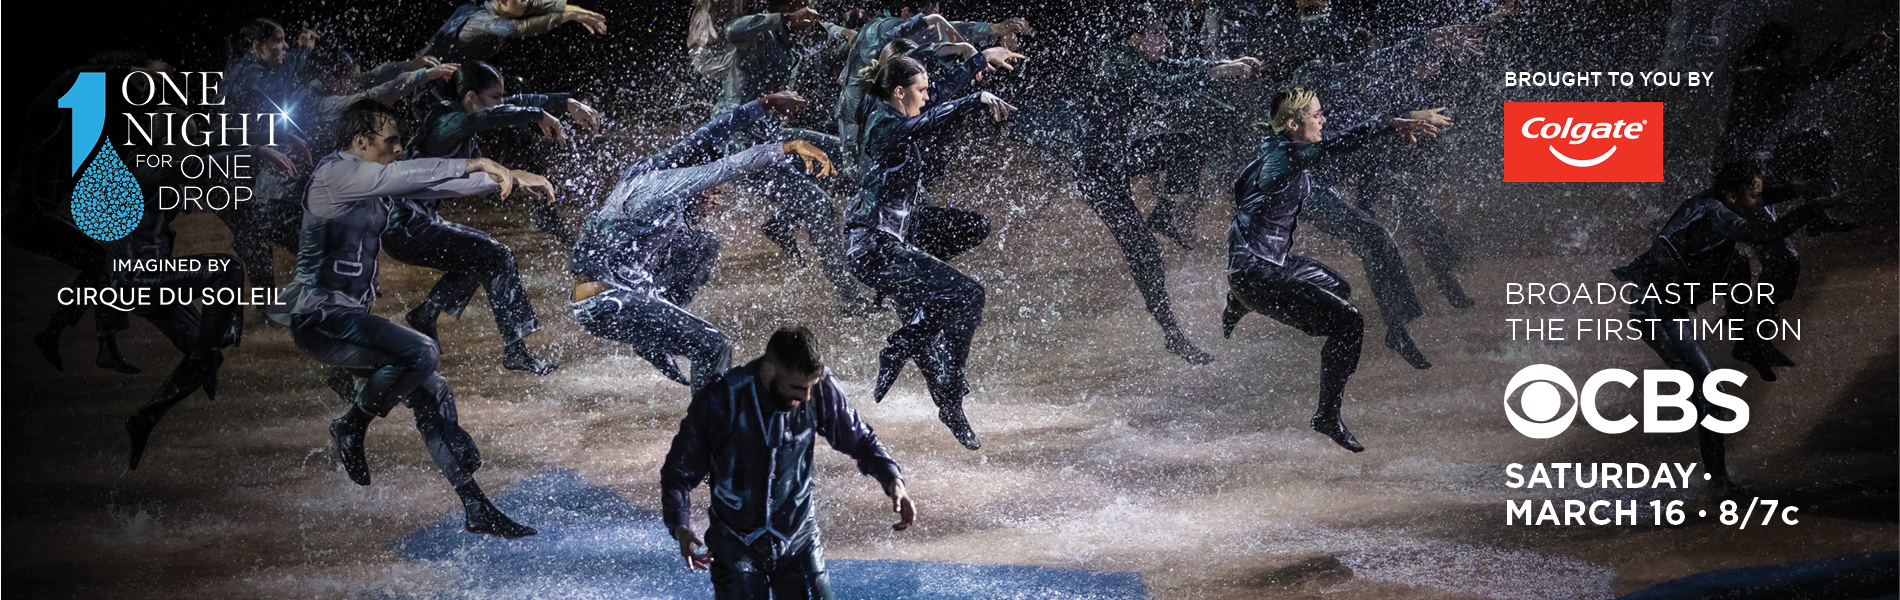 Dancers dancing on a stage with 4 inches of water.